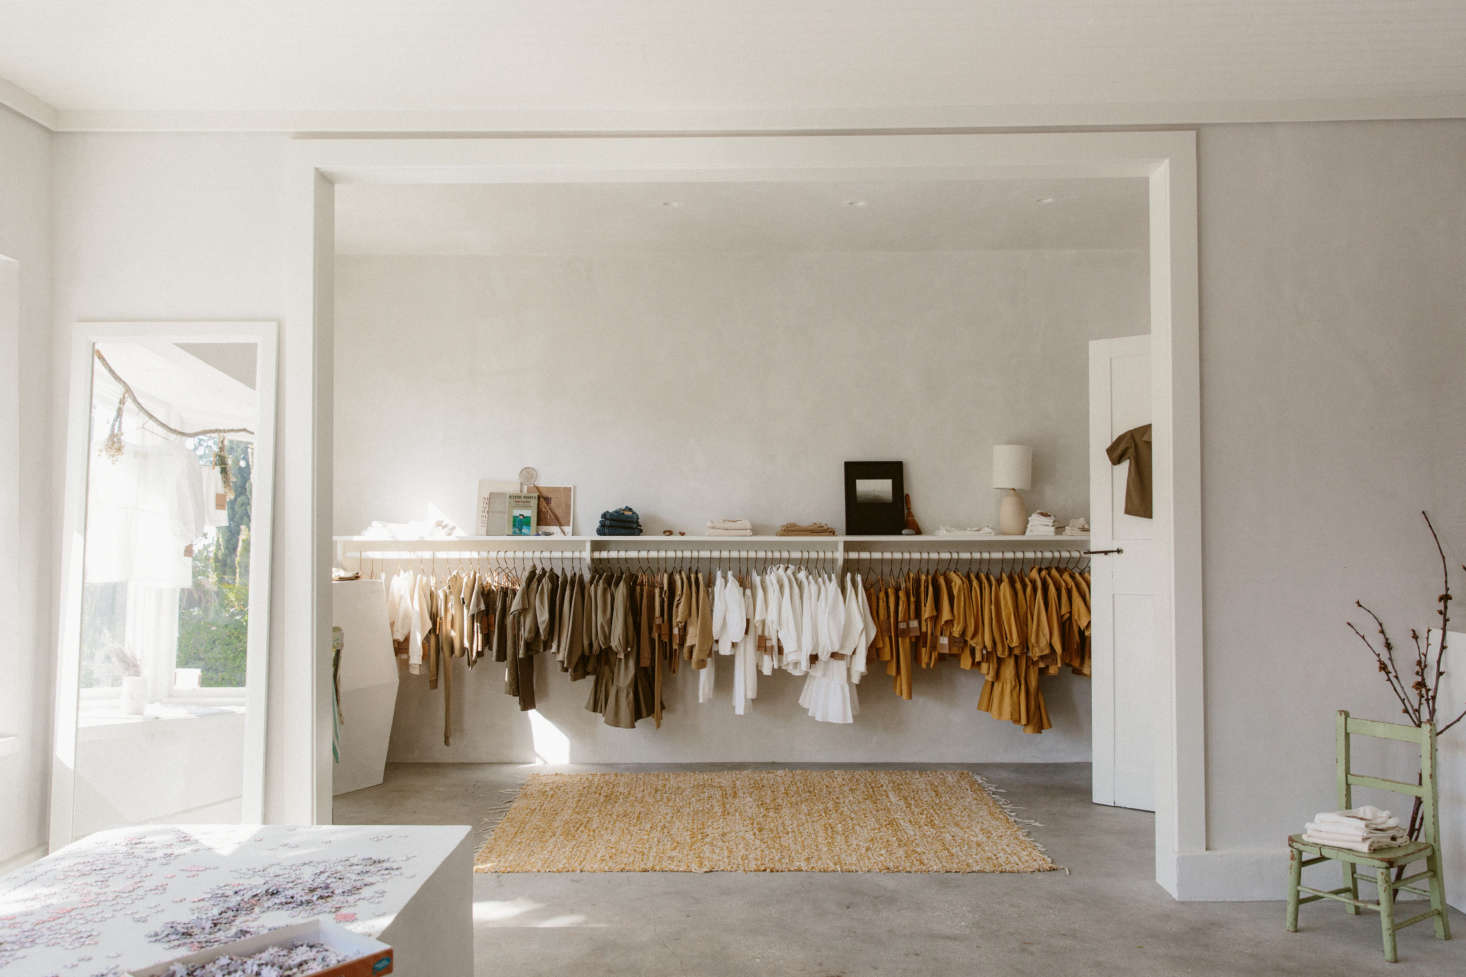 O'Rourke uses doorways and windows as opportunities for framing rooms and vignettes. Here, a wide, ceiling-high opening—set off by a floor mirror, at left; a small chair, at right; and a natural-fiber rug beyond—creates a thoughtful composition. The focus is always O'Rourke's plant-dyed clothing for children and adults, dyed with natural materials and sewn in LA.